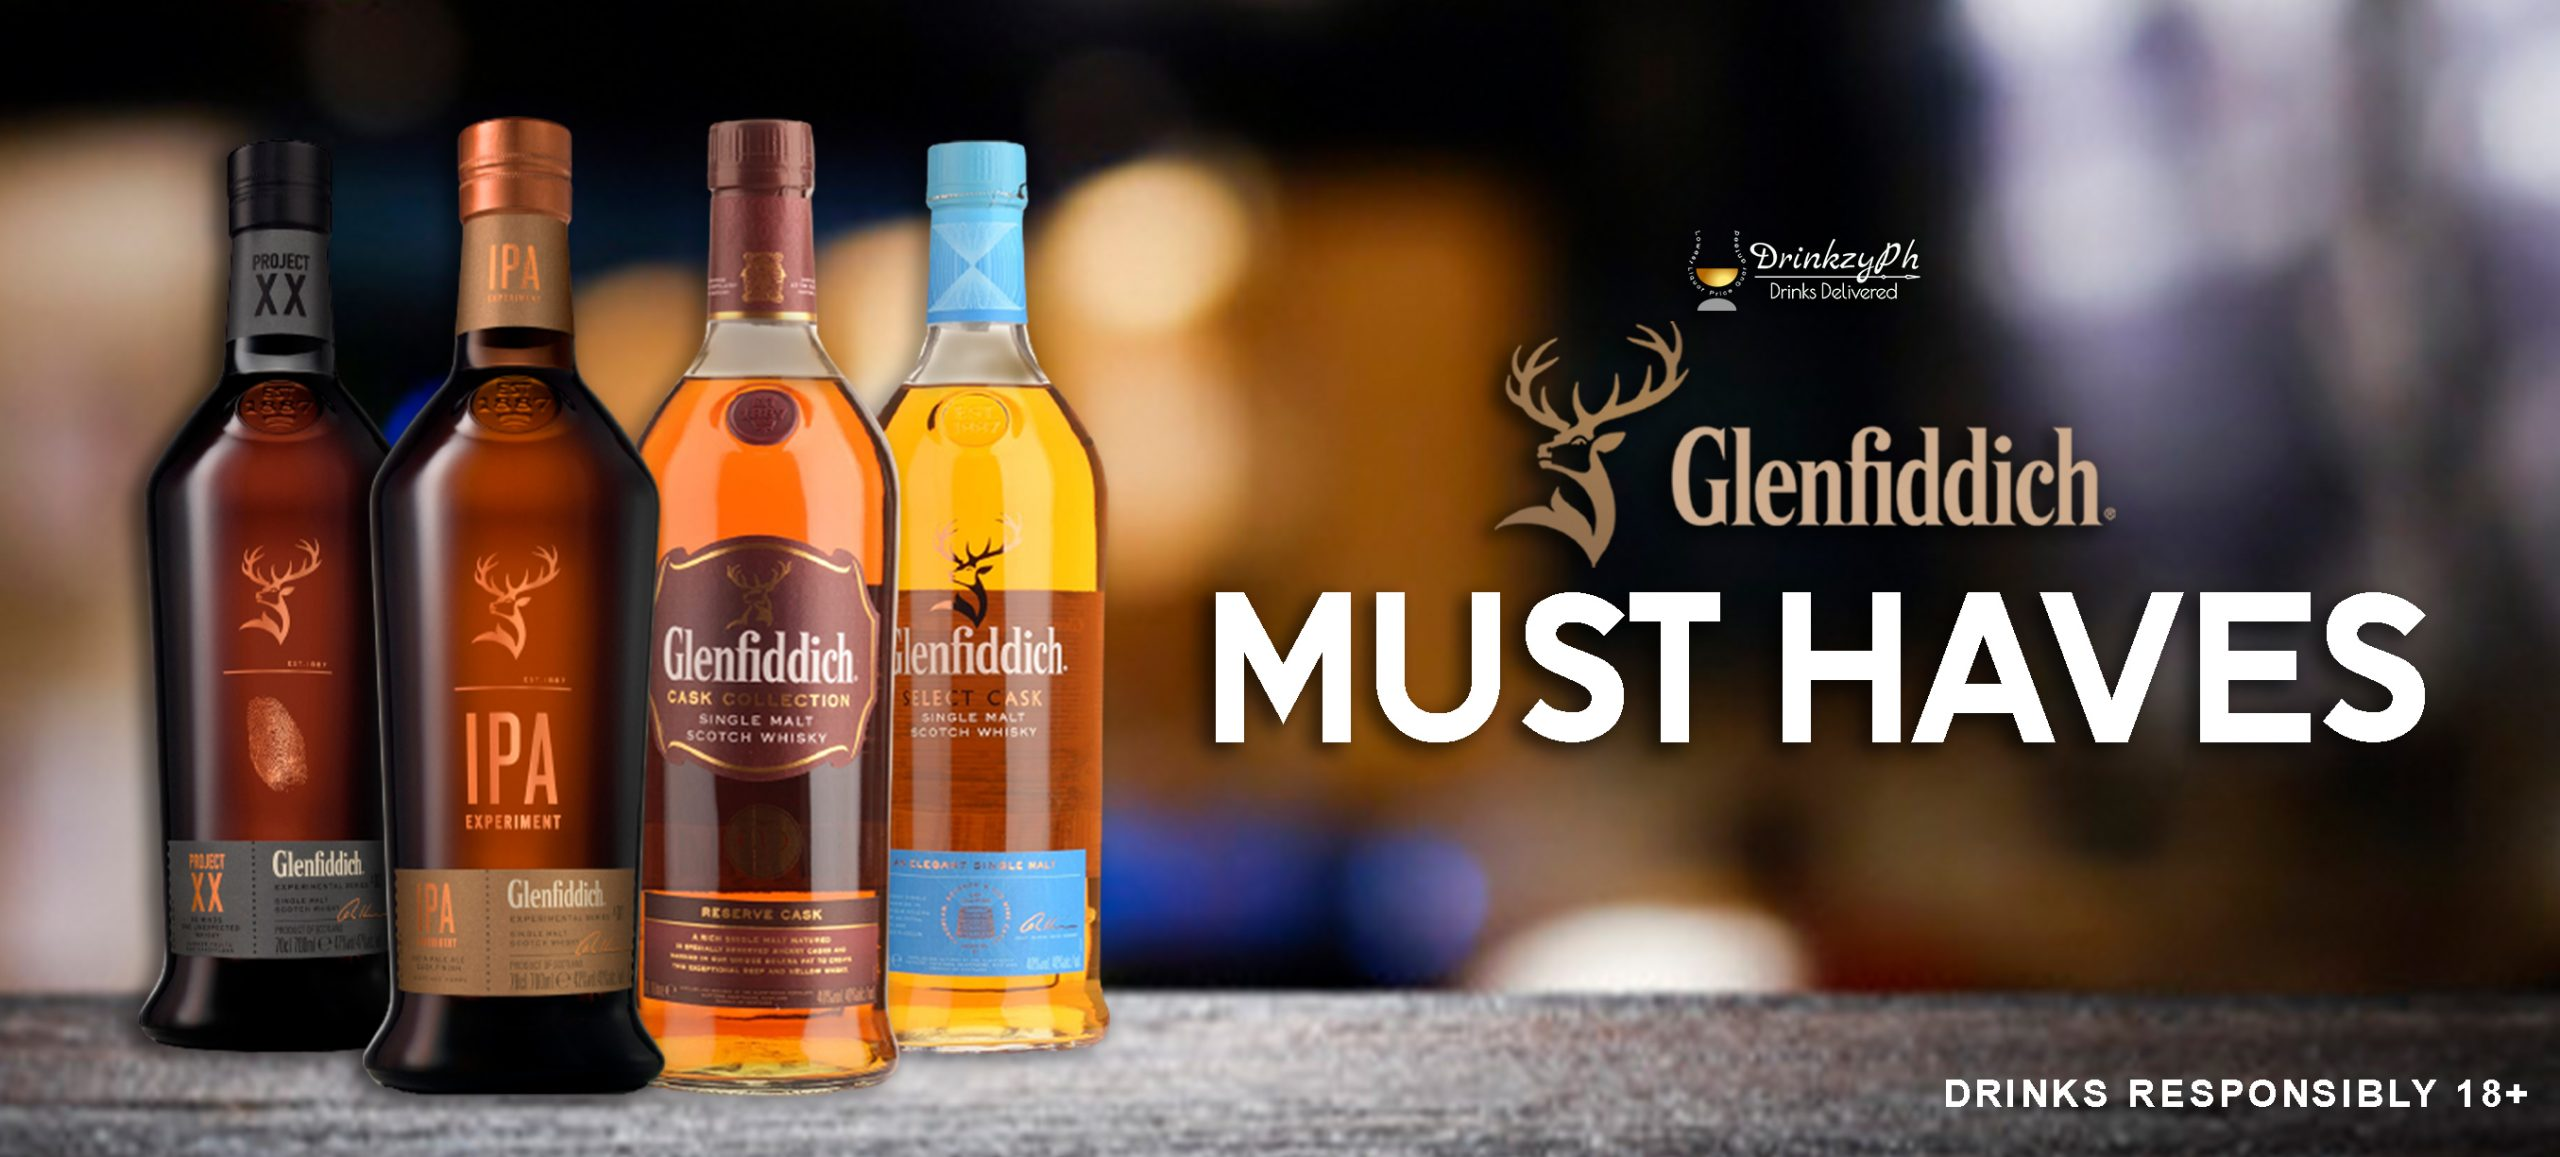 GLENFIDDICH XXIPACASKSELECT SITE